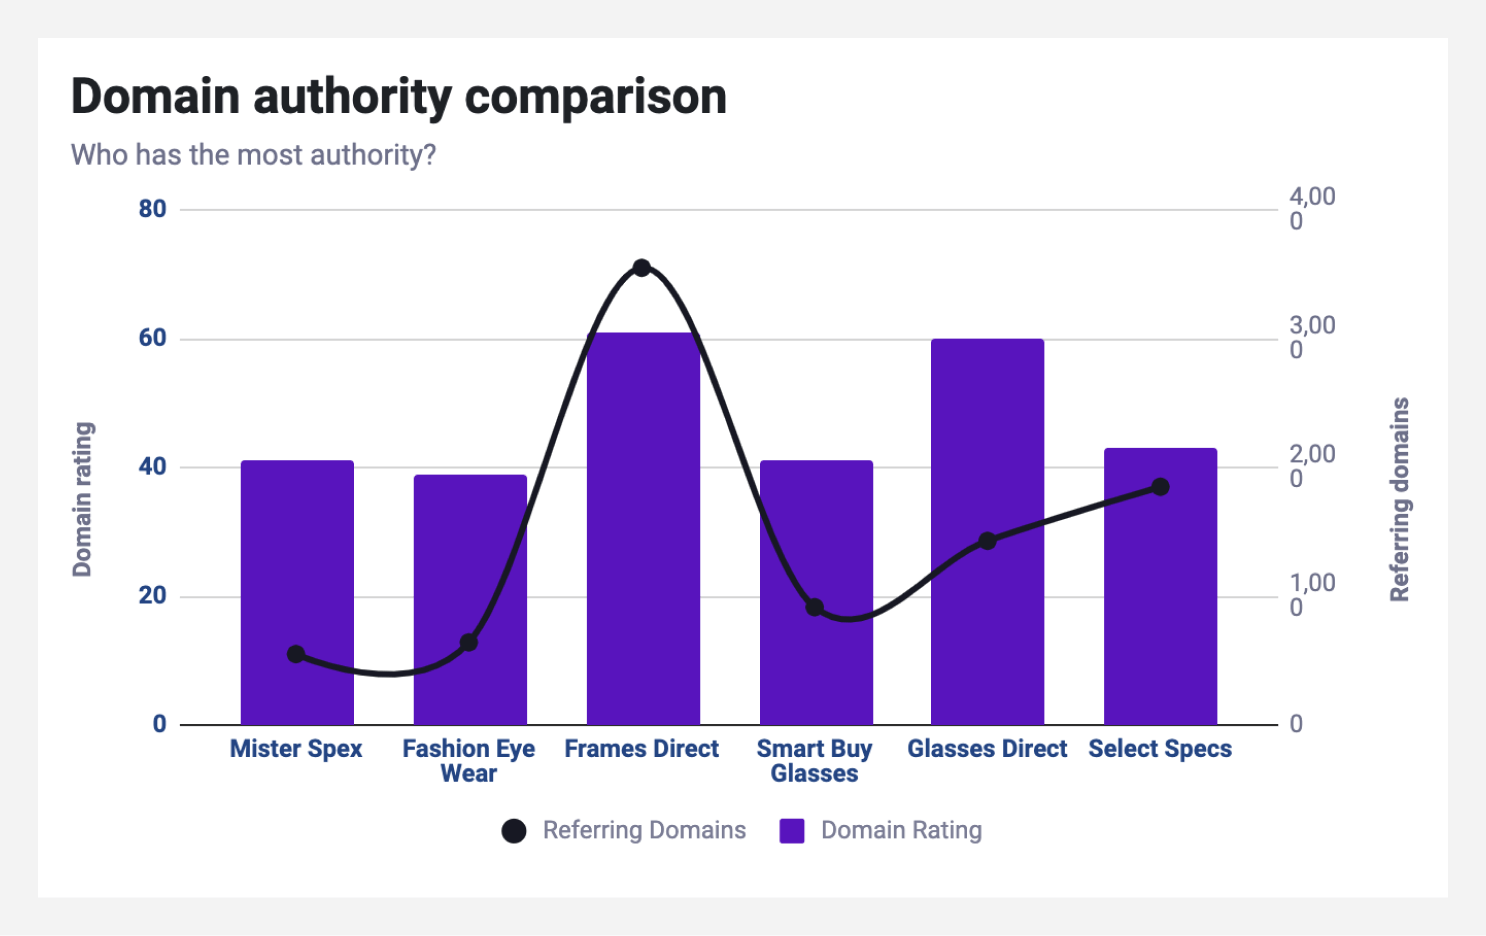 Domain authority comparison chart from the SEO competitor analysis template.